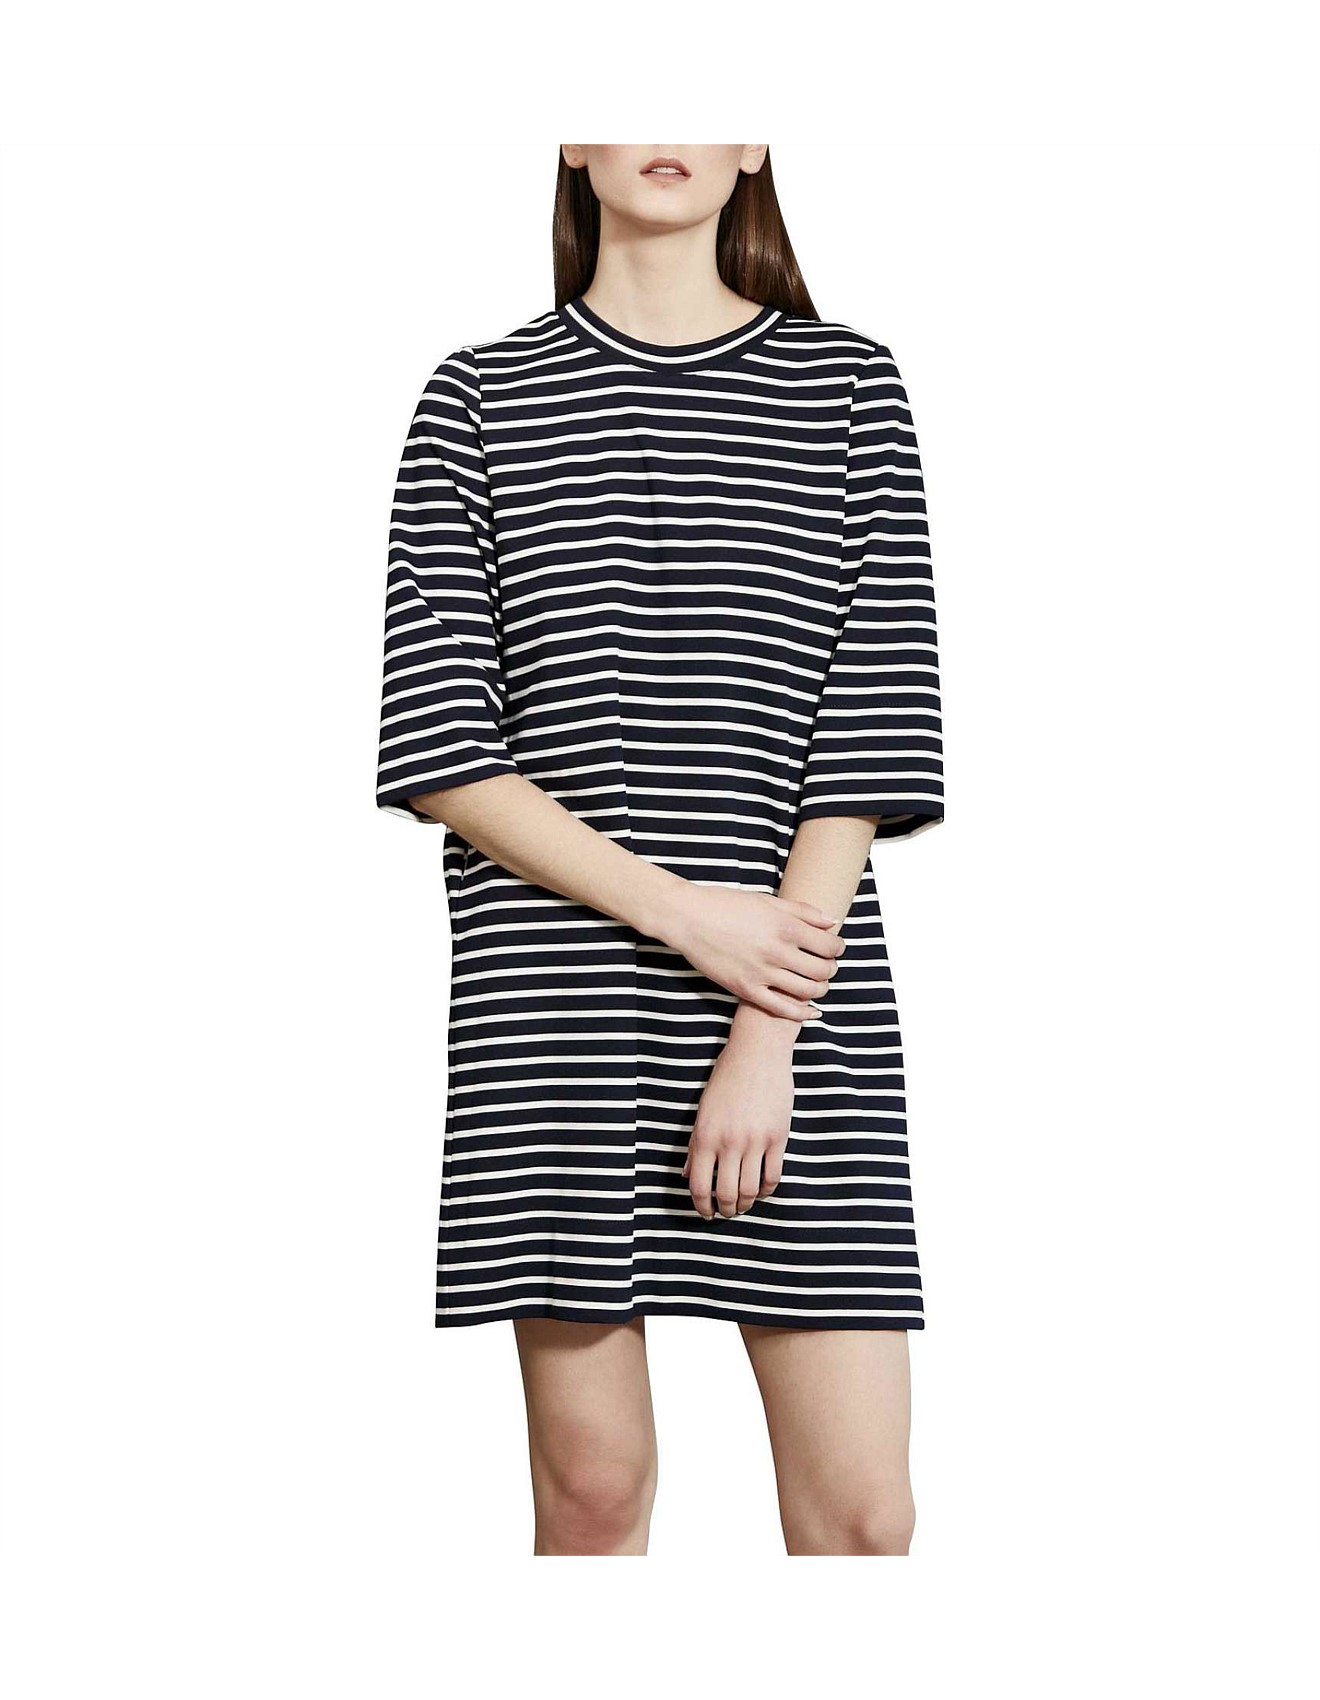 Hook Clothing Women 39s Dresses Designer Women 39s Dresses Online David